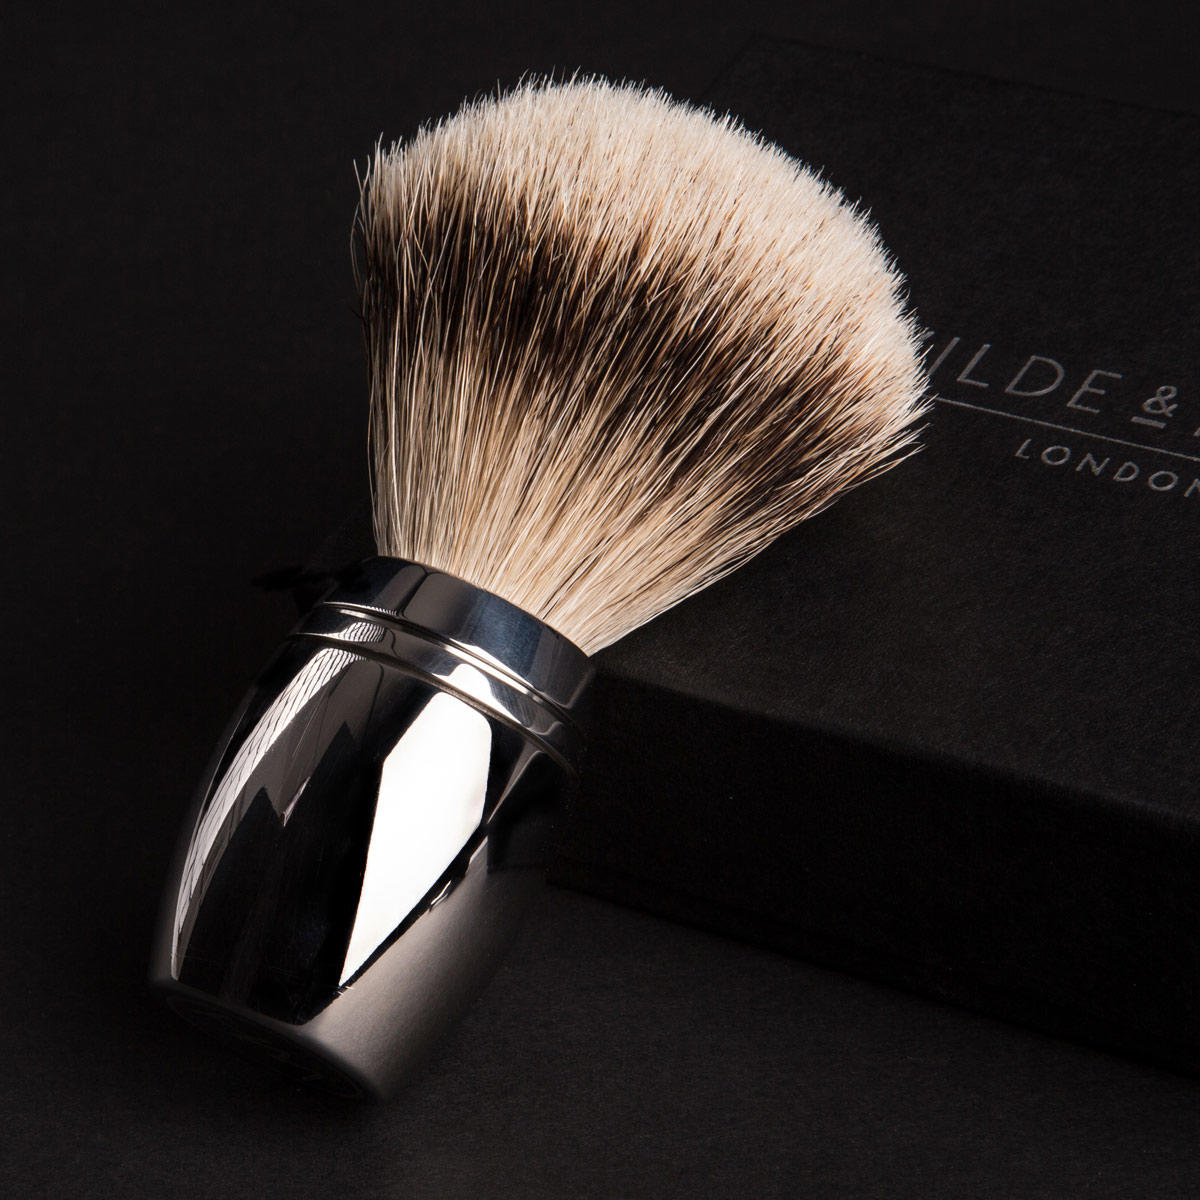 Badger Hair Shaving Brush in Stainless Steel Stand